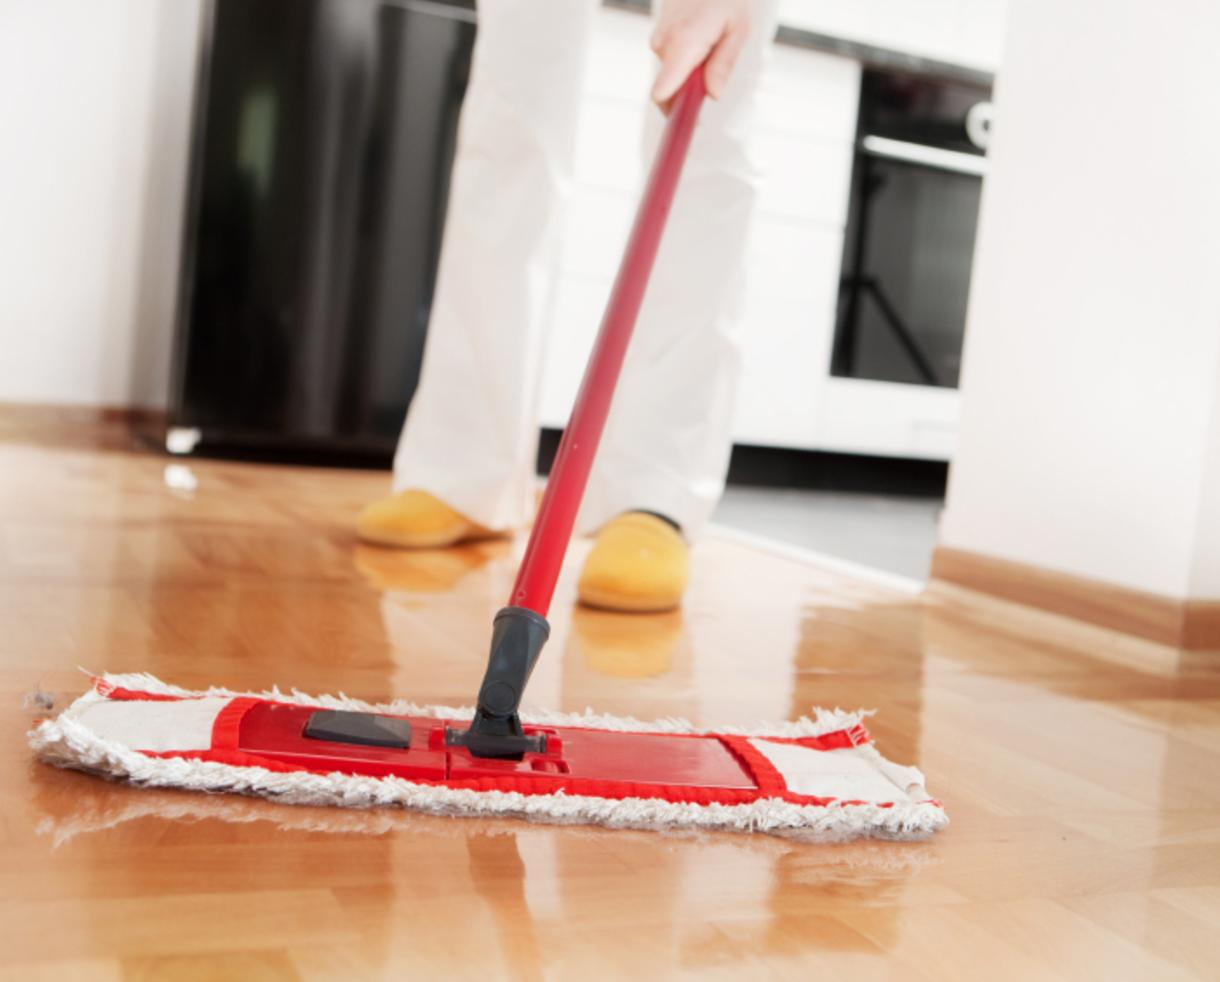 $75 for Three Man-Hours of House Cleaning from Everclean Maid Service - DC & VA Only (58% off)